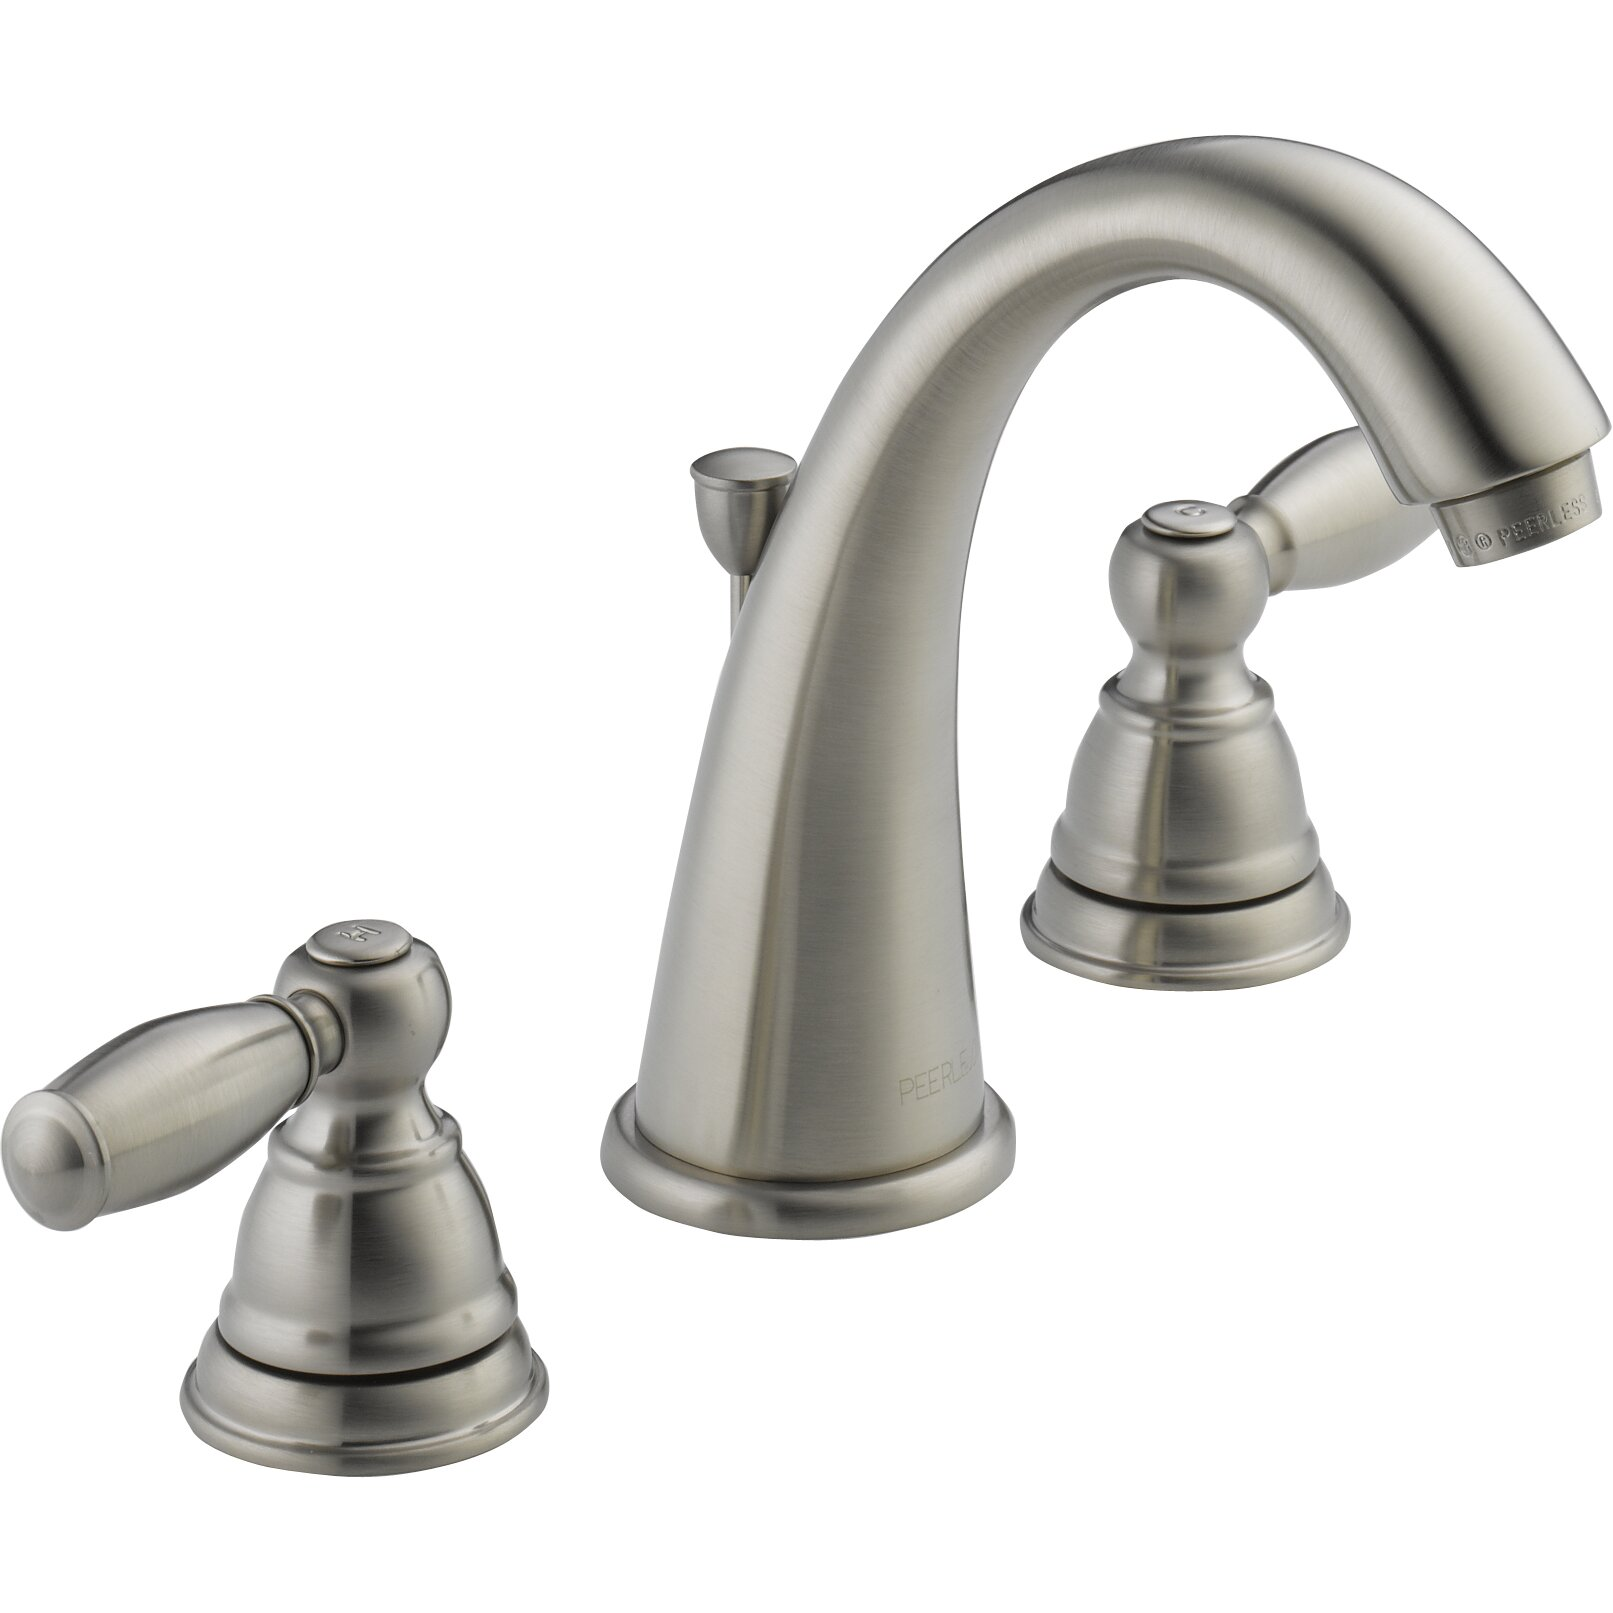 Peerless Faucets Widespread Bathroom Faucet With Double